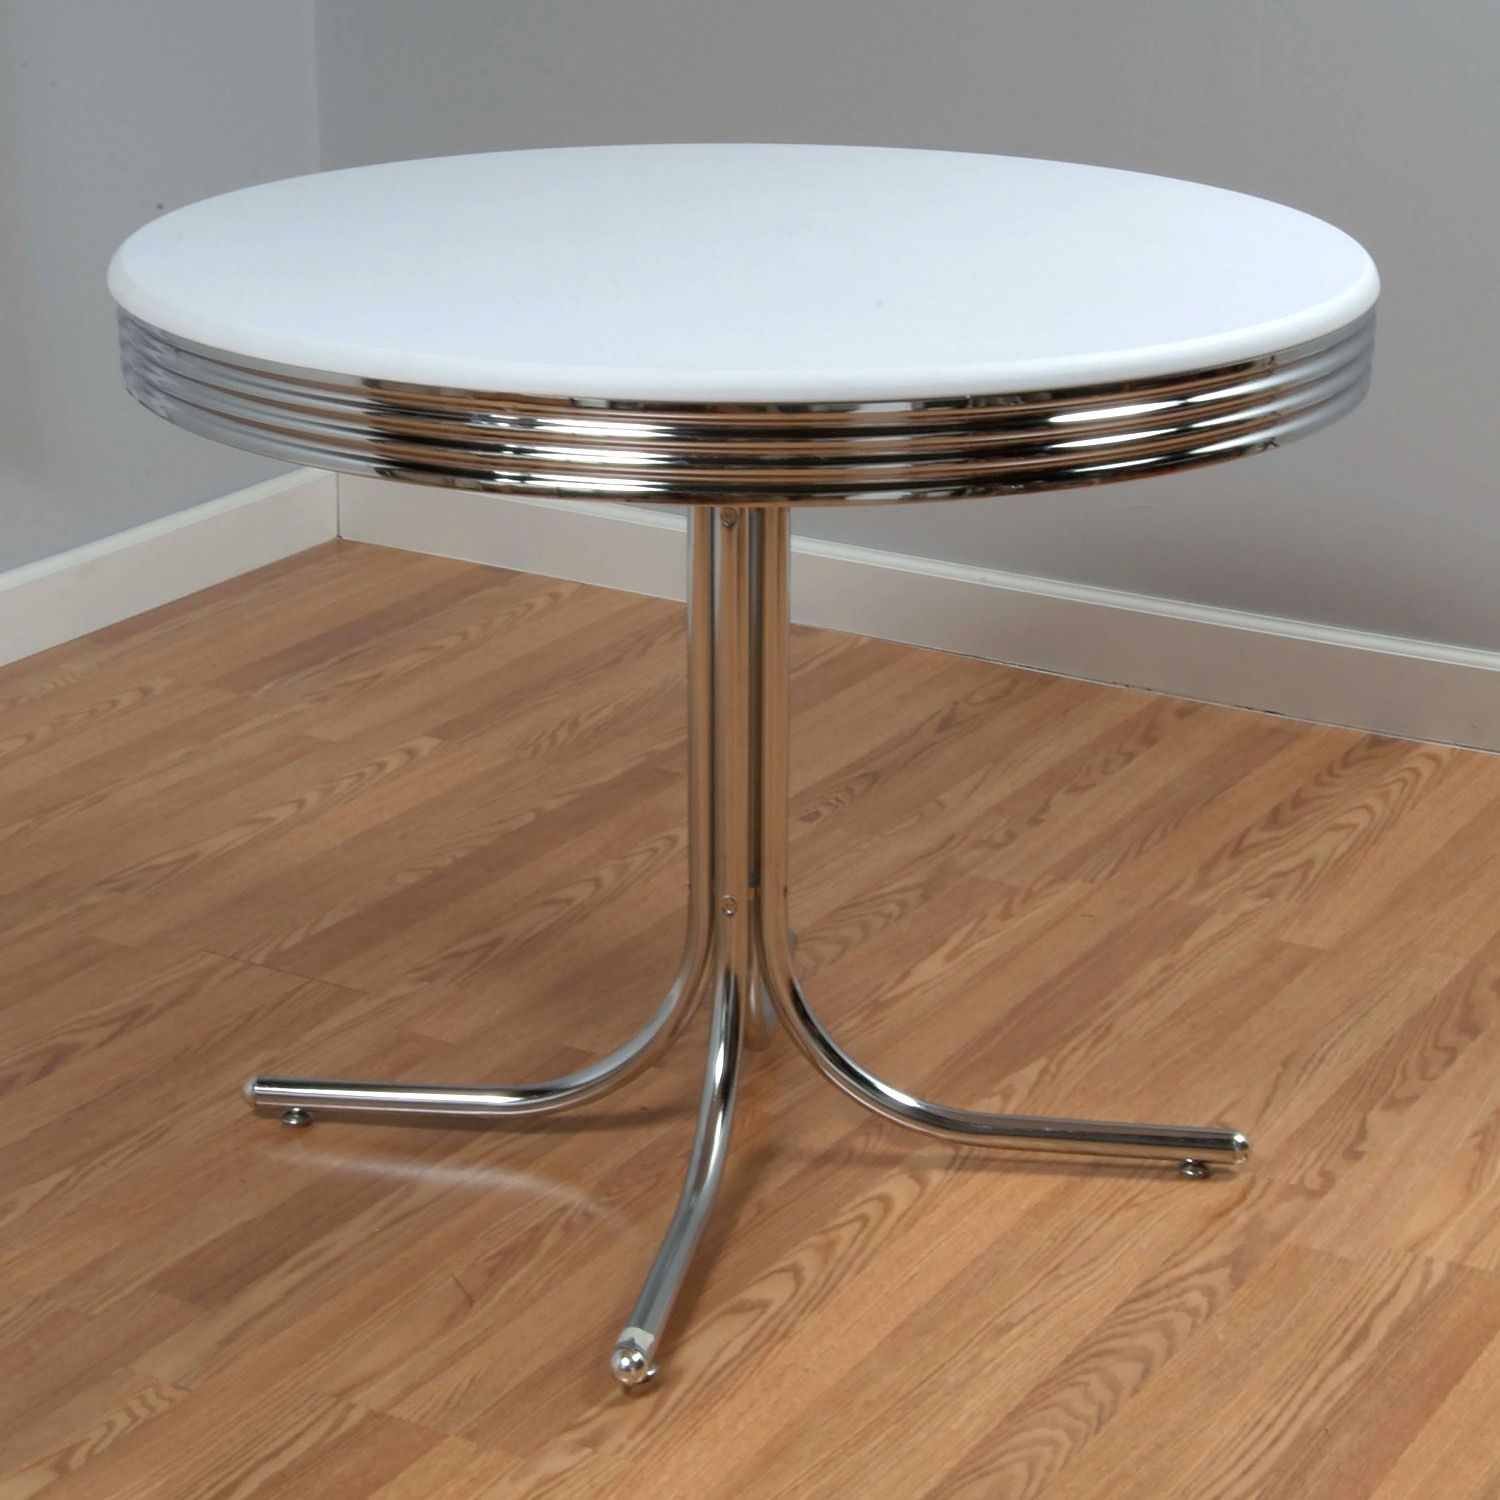 results for modern dining table free shipping on orders over 45